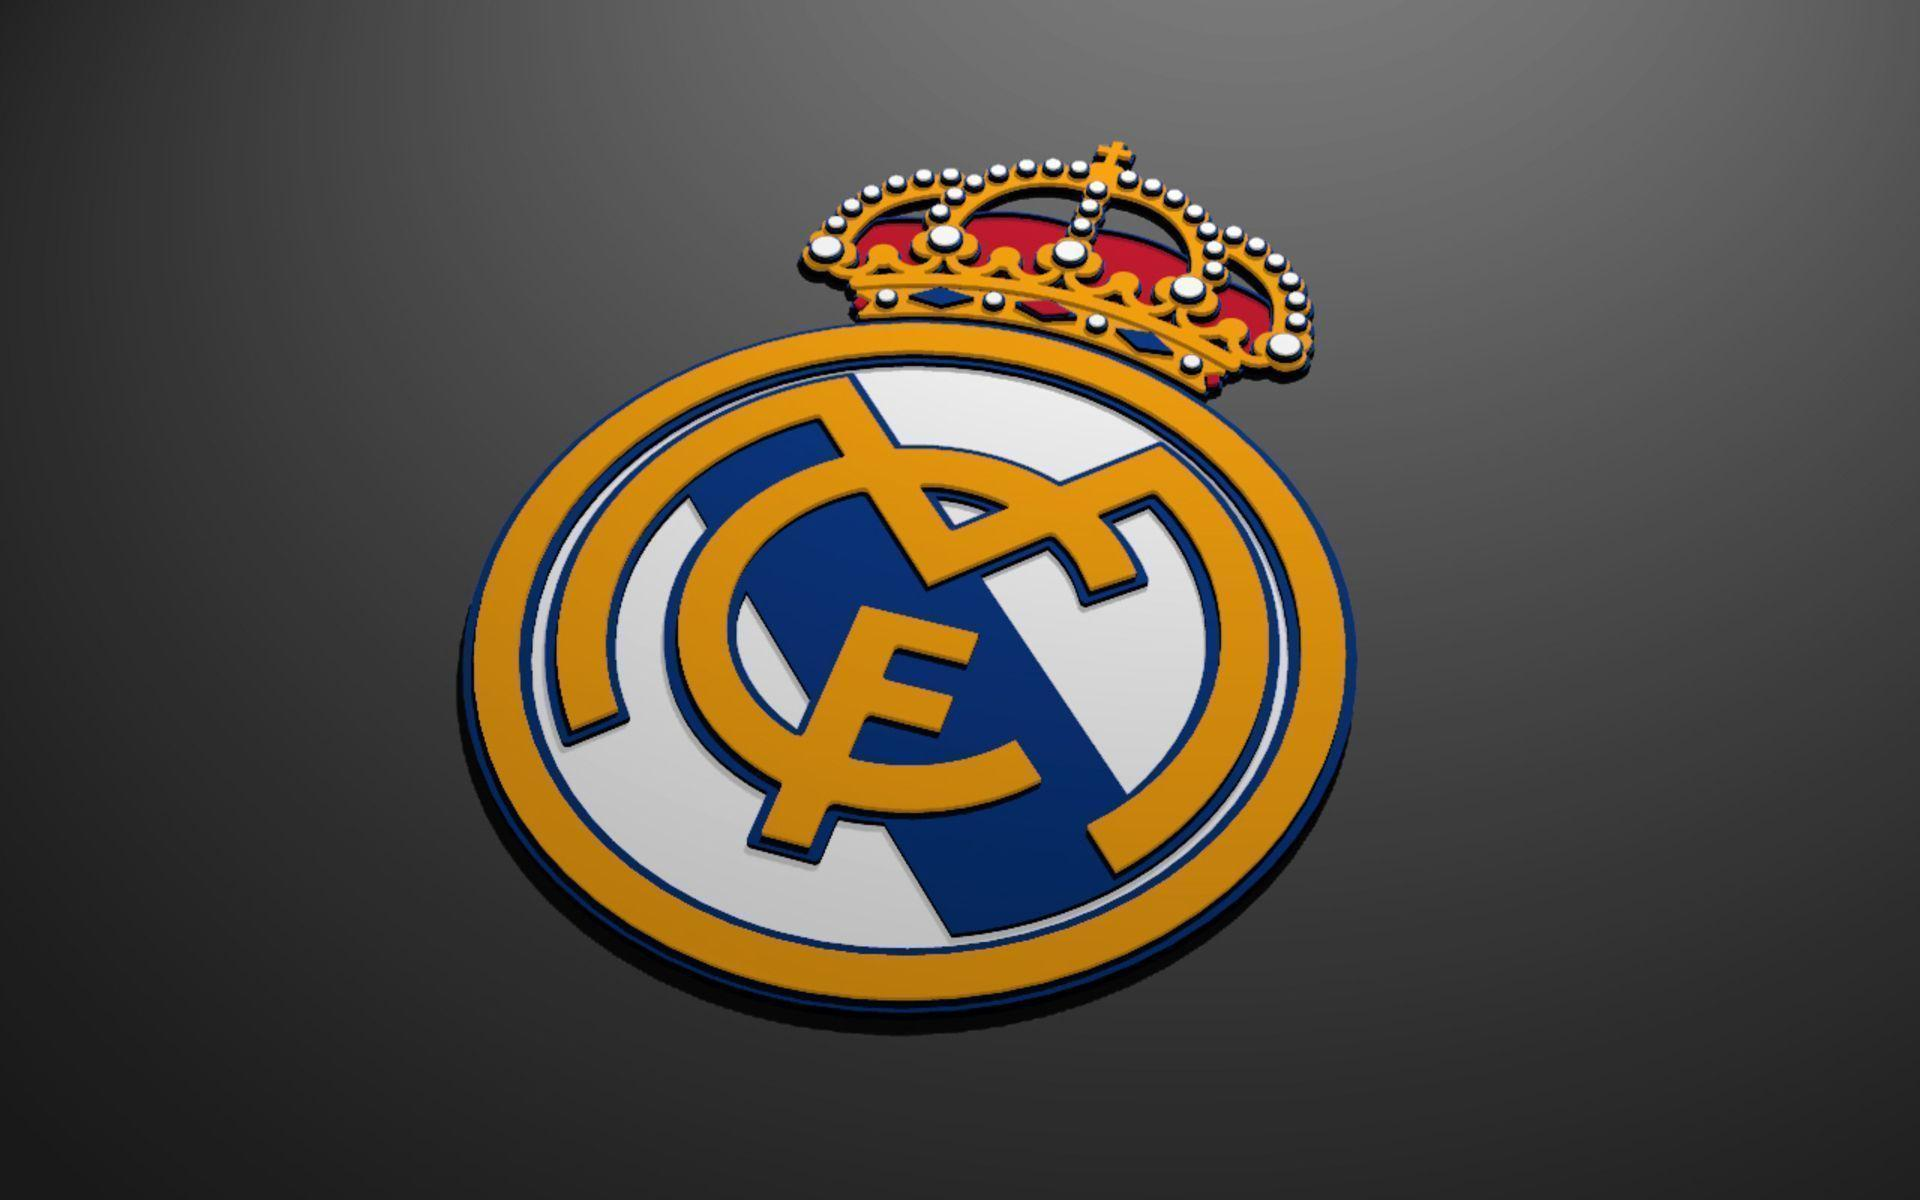 Real Madrid Logo 2016 Football Club | Wallpapers, Backgrounds ...